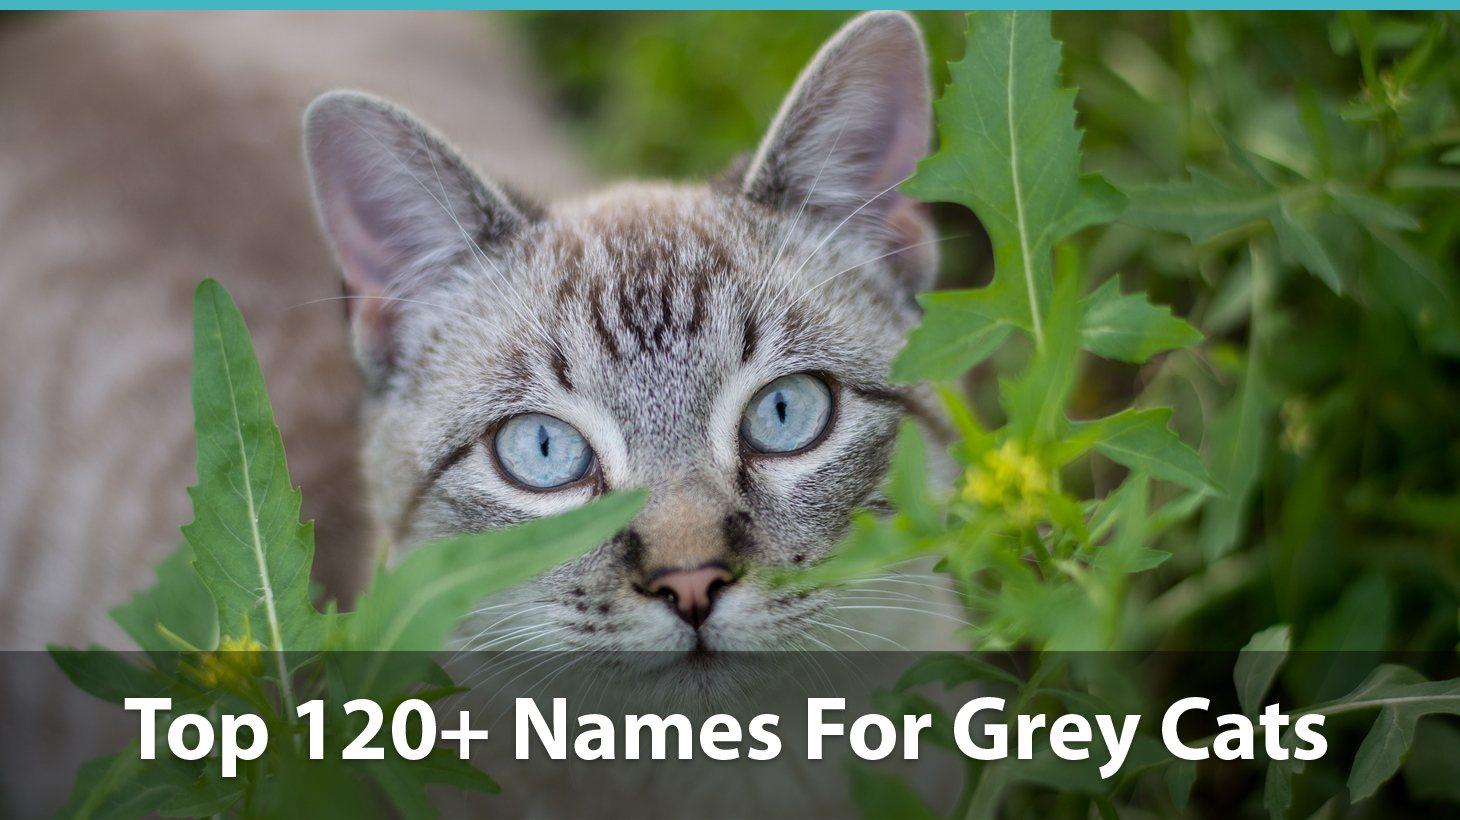 Top 120 Names For Grey Cats Cute Funny Unique Puns And More